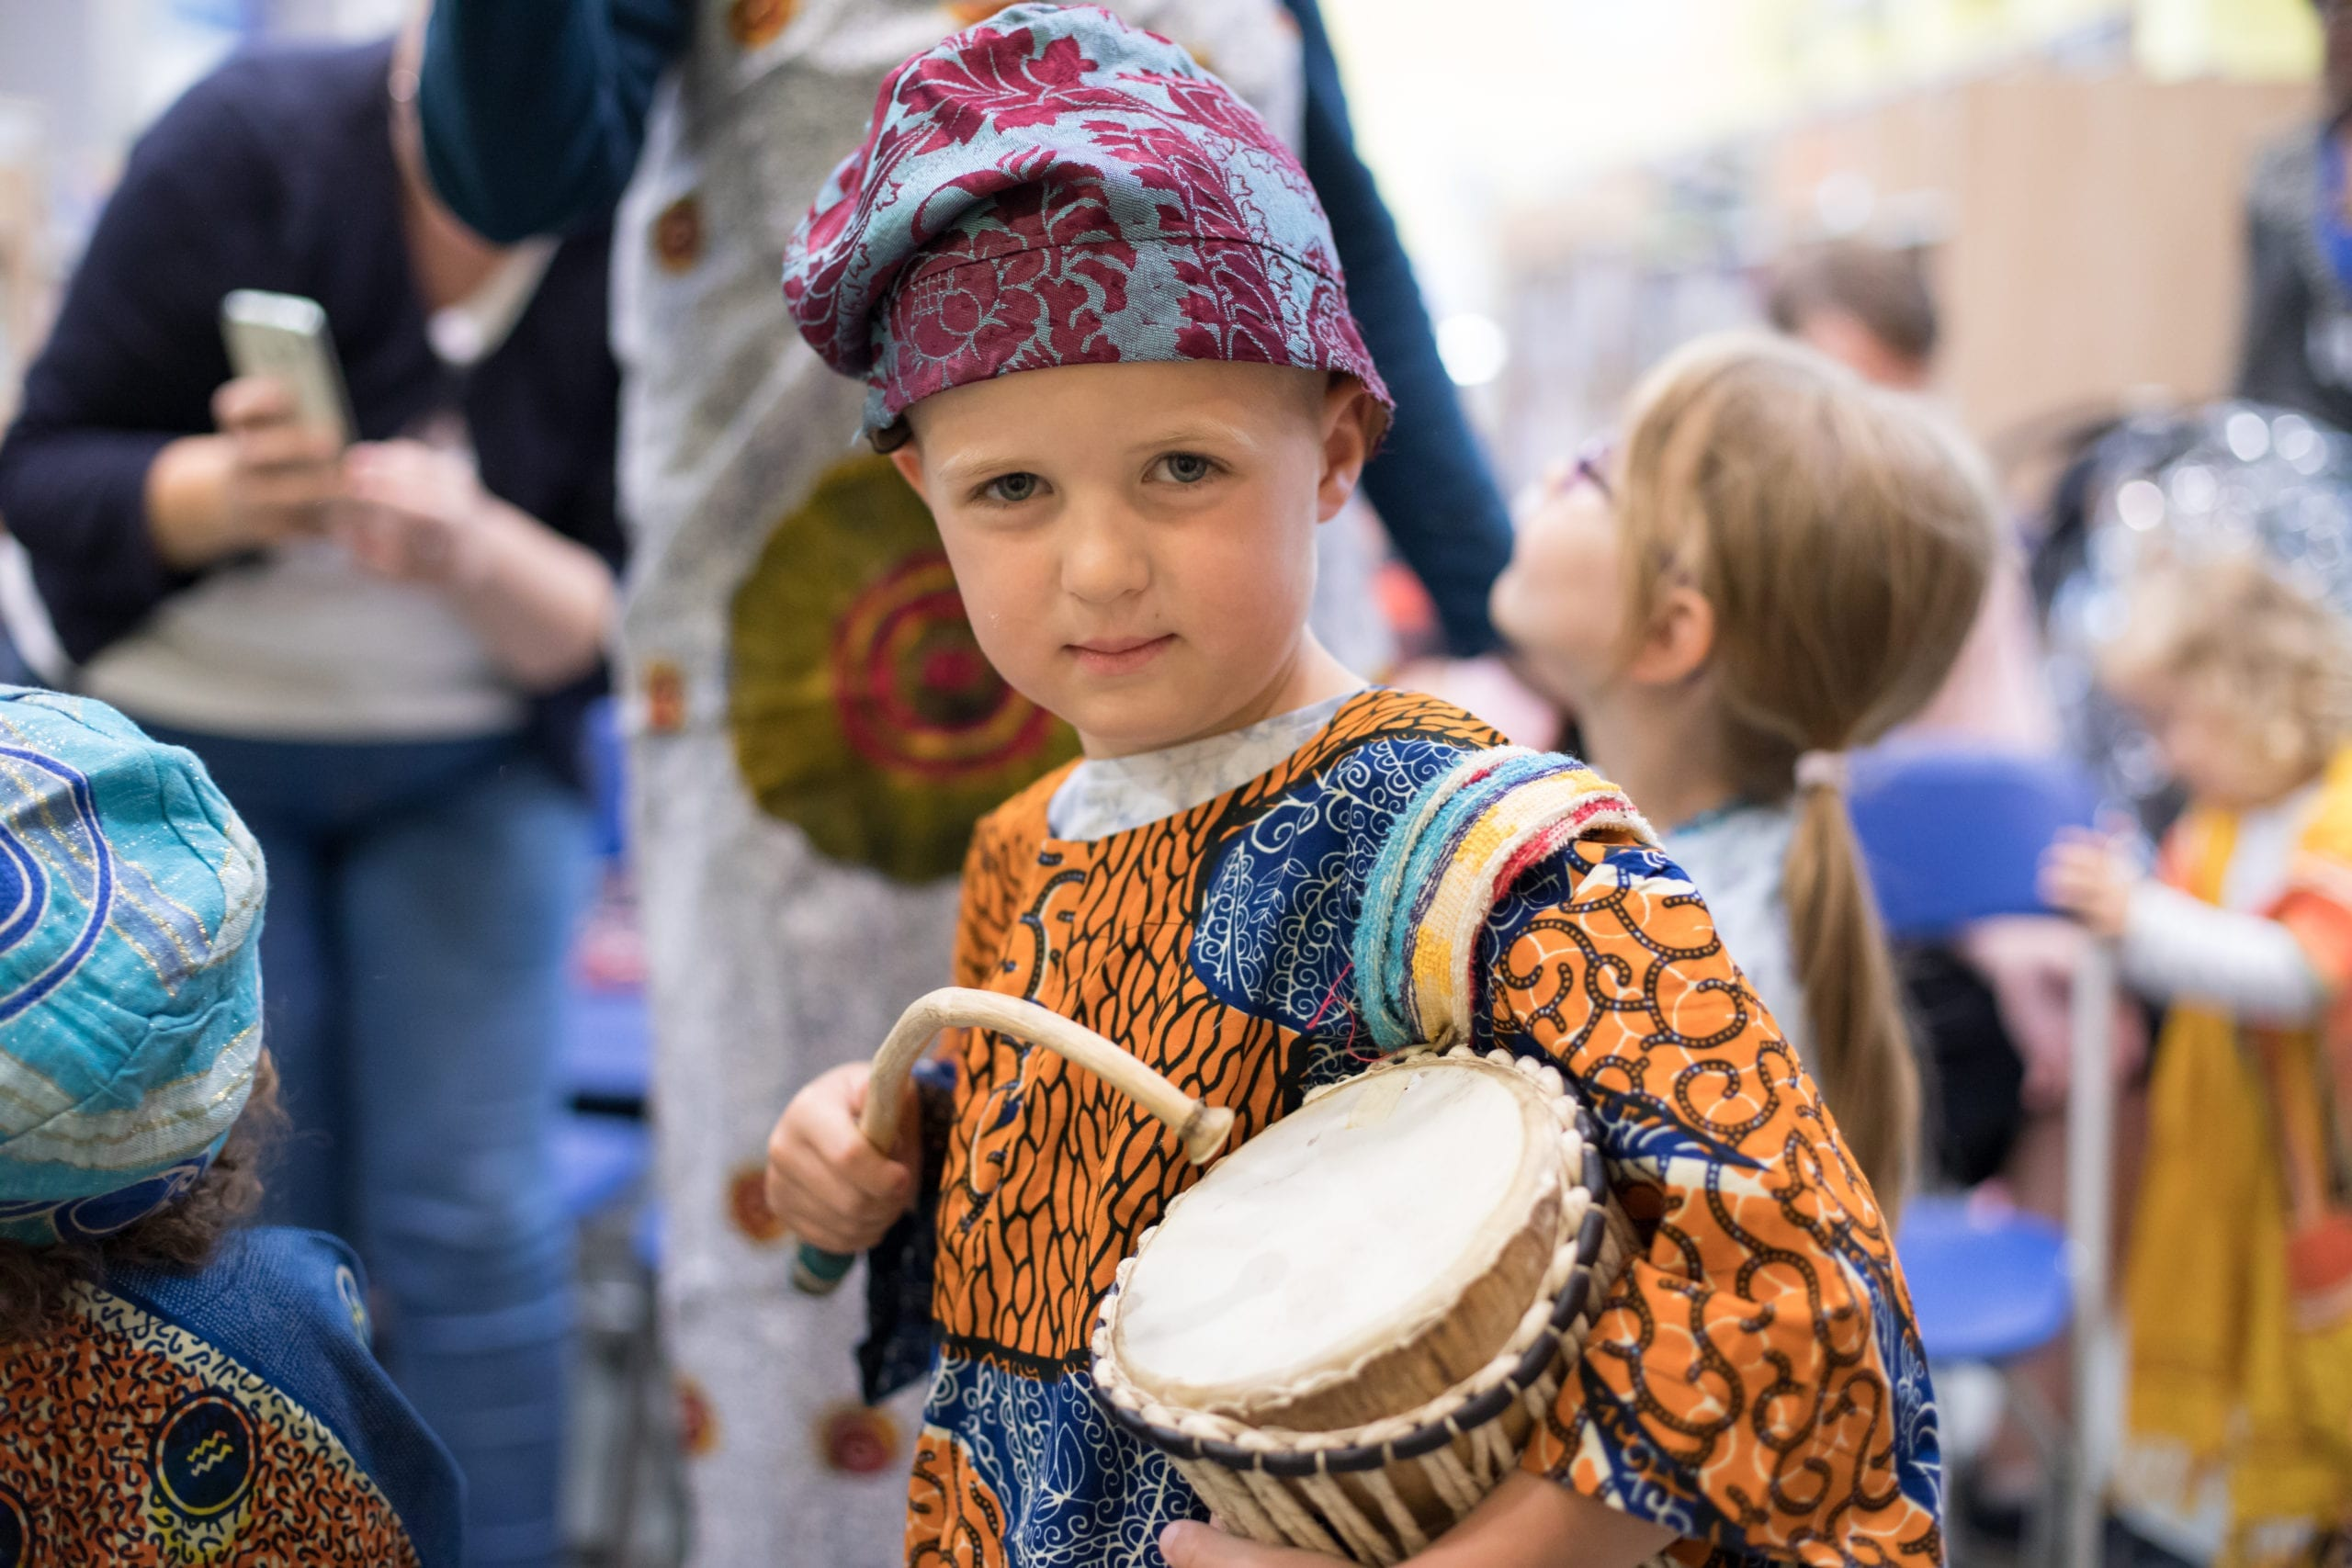 A young child playing a drum